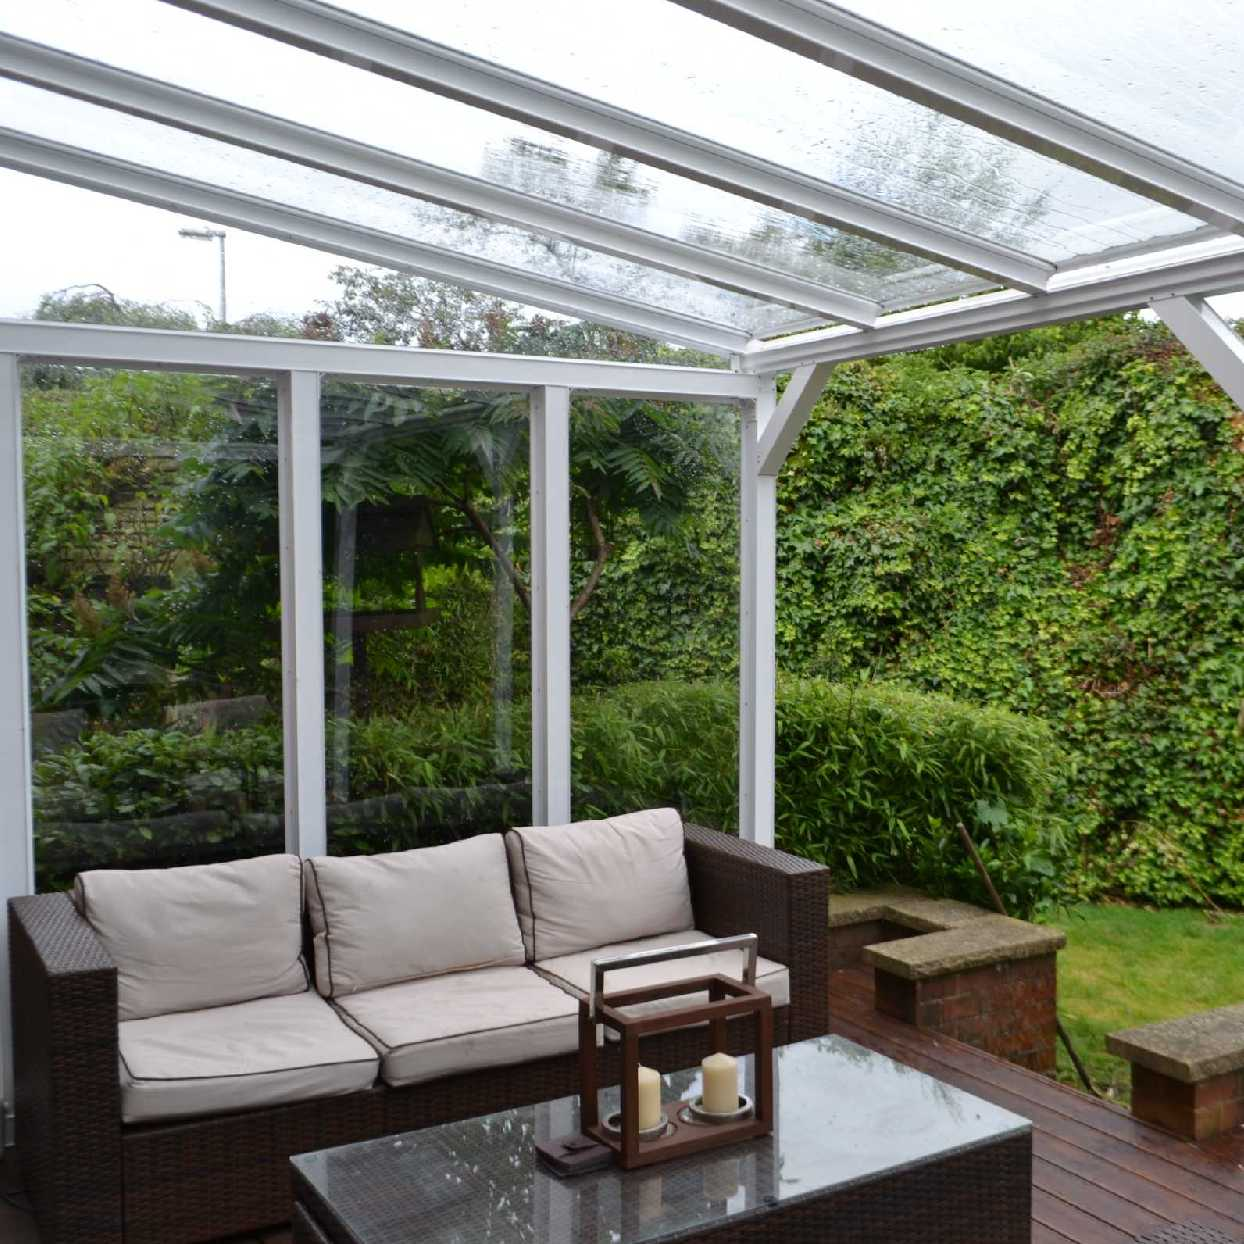 Great selection of Omega Smart White Lean-To Canopy with 16mm Polycarbonate Glazing - 9.1m (W) x 4.5m (P), (5) Supporting Posts